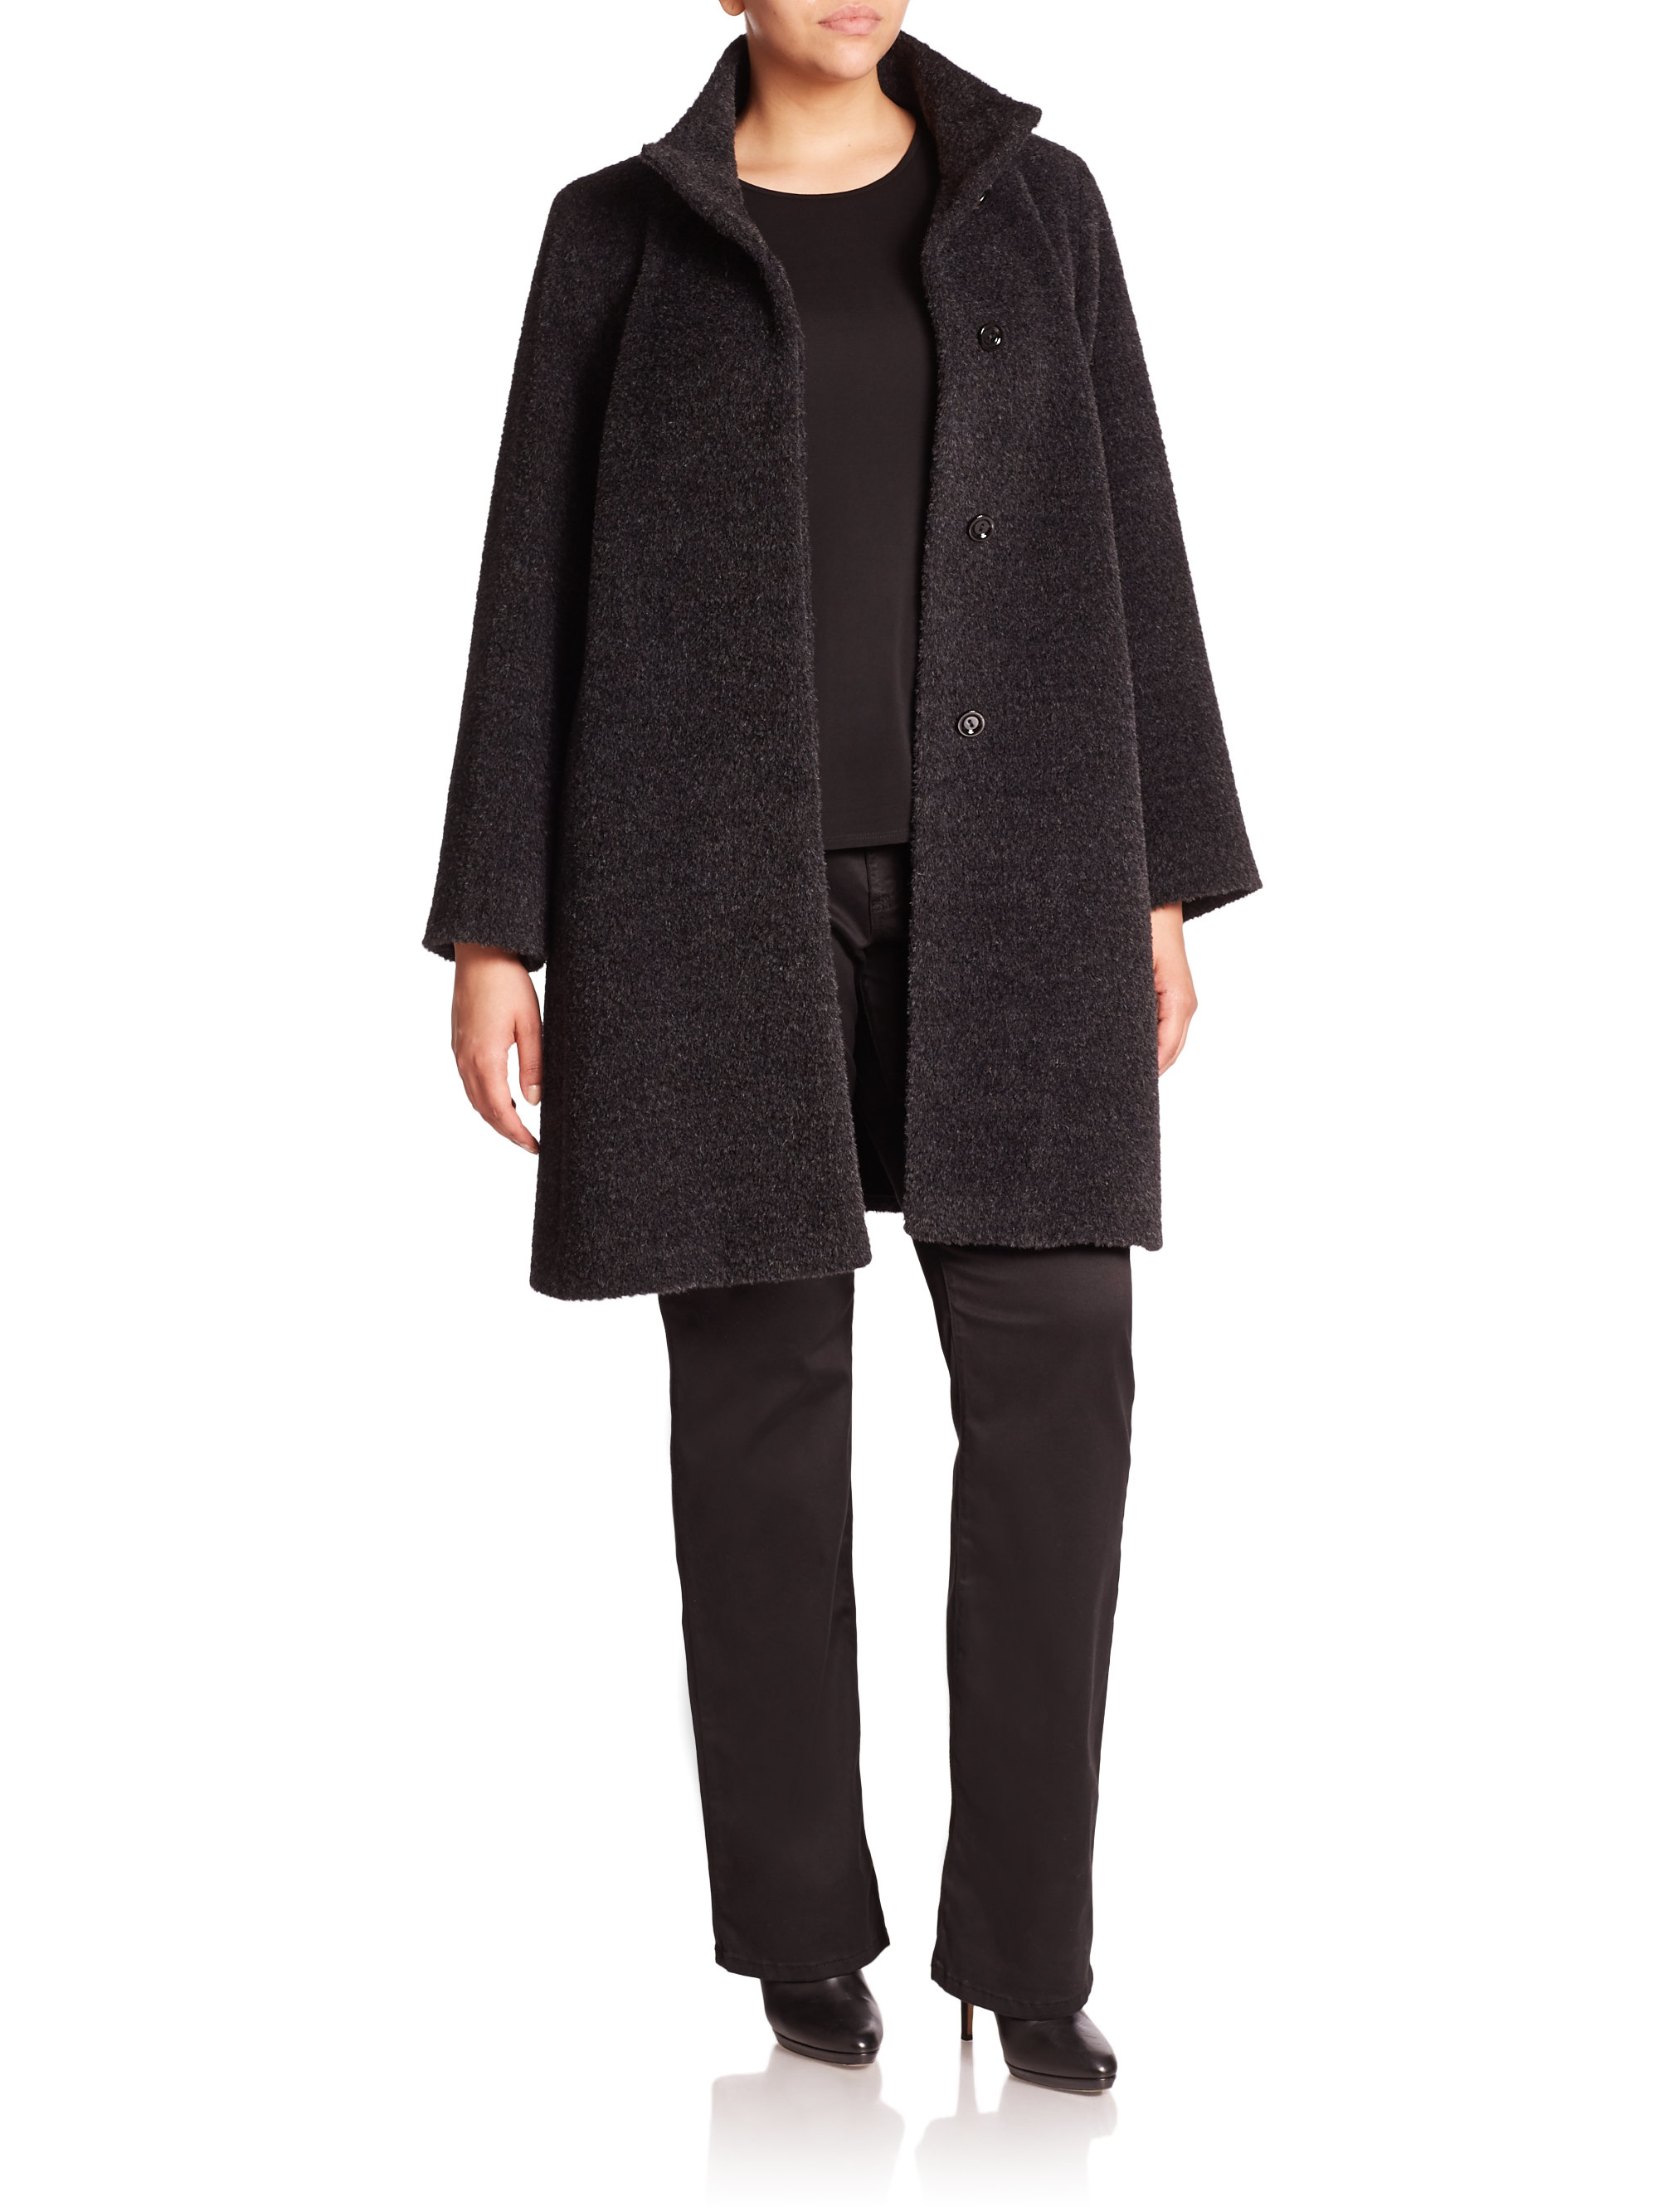 Cinzia rocca Wool & Angora Walking Coat in Gray | Lyst